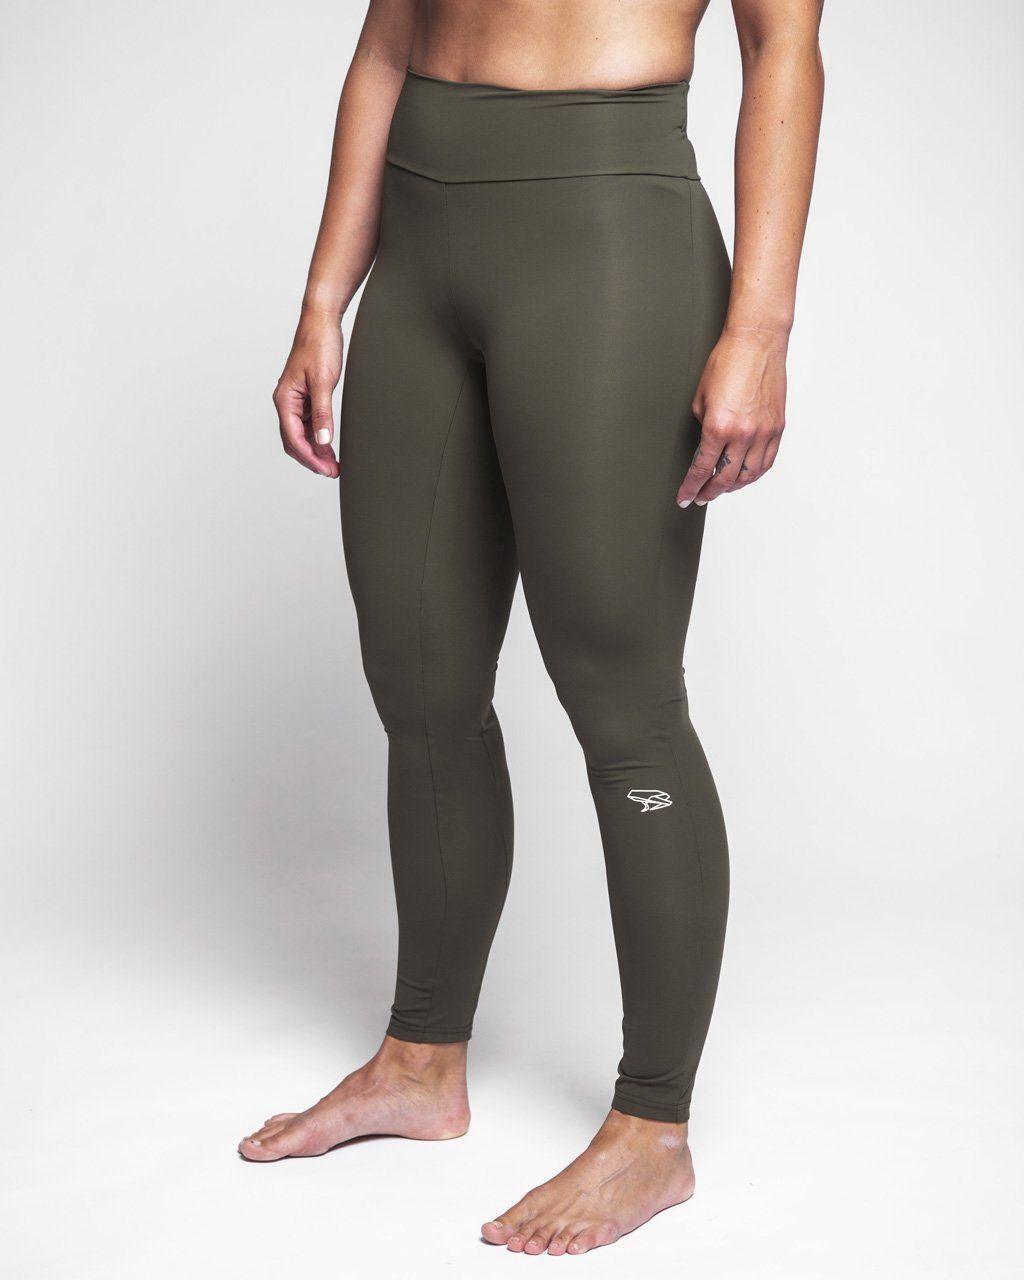 Népra - Terra Tights -  CrossFit and Trail Running Durability - Weekendbee - sustainable sportswear